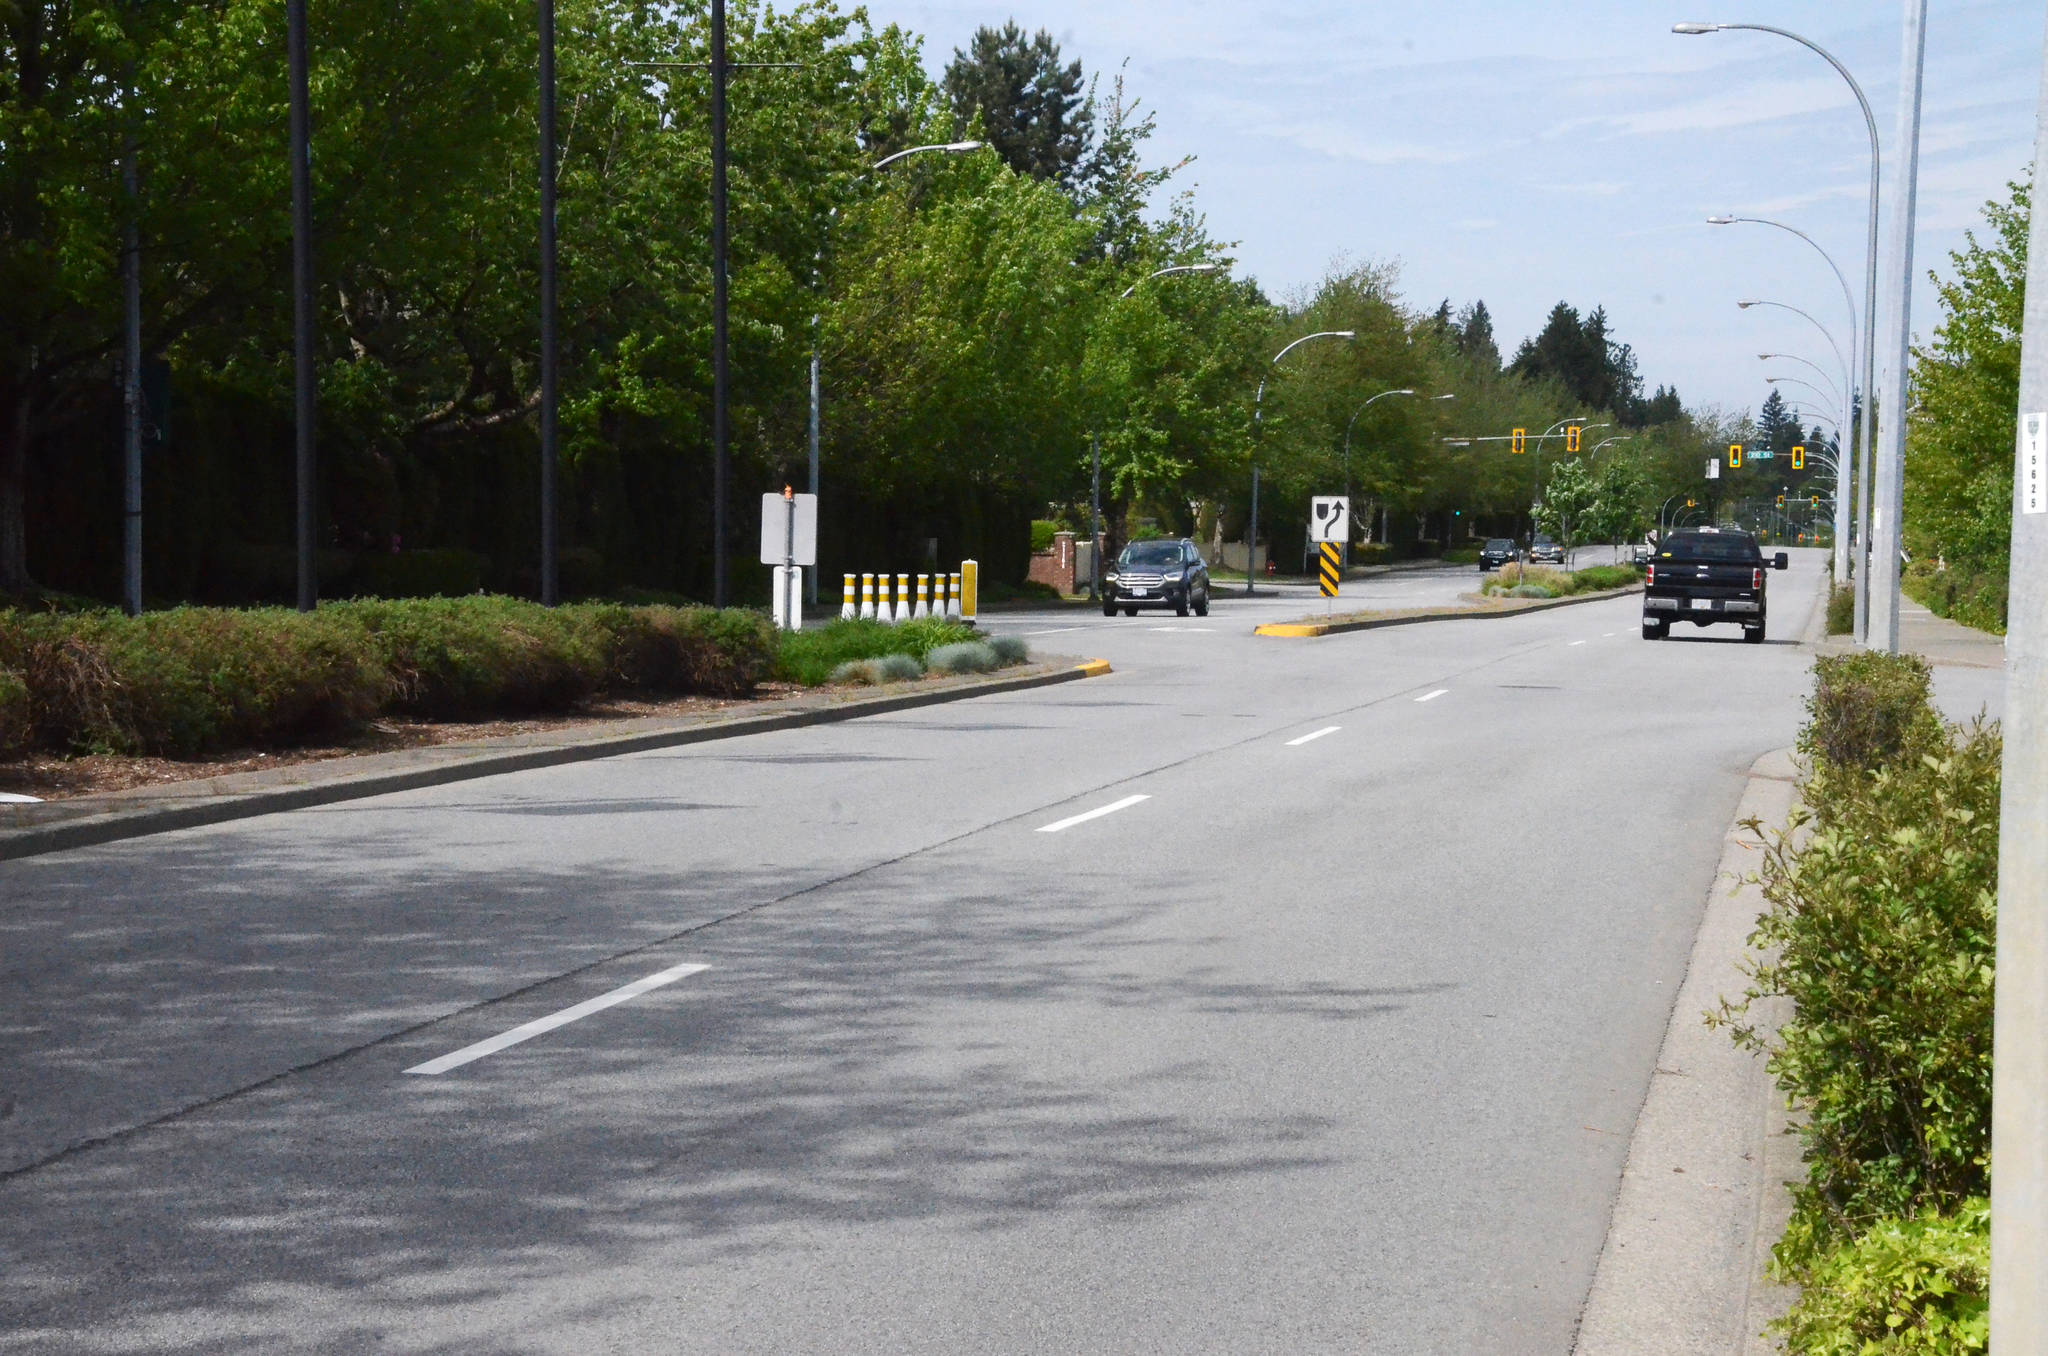 HUB Langley would like the westbound lane of 88th Avenue, seen here, reserved for pedestrian and cyclist access during daylight hours. (Matthew Claxton/Langley Advance Times)